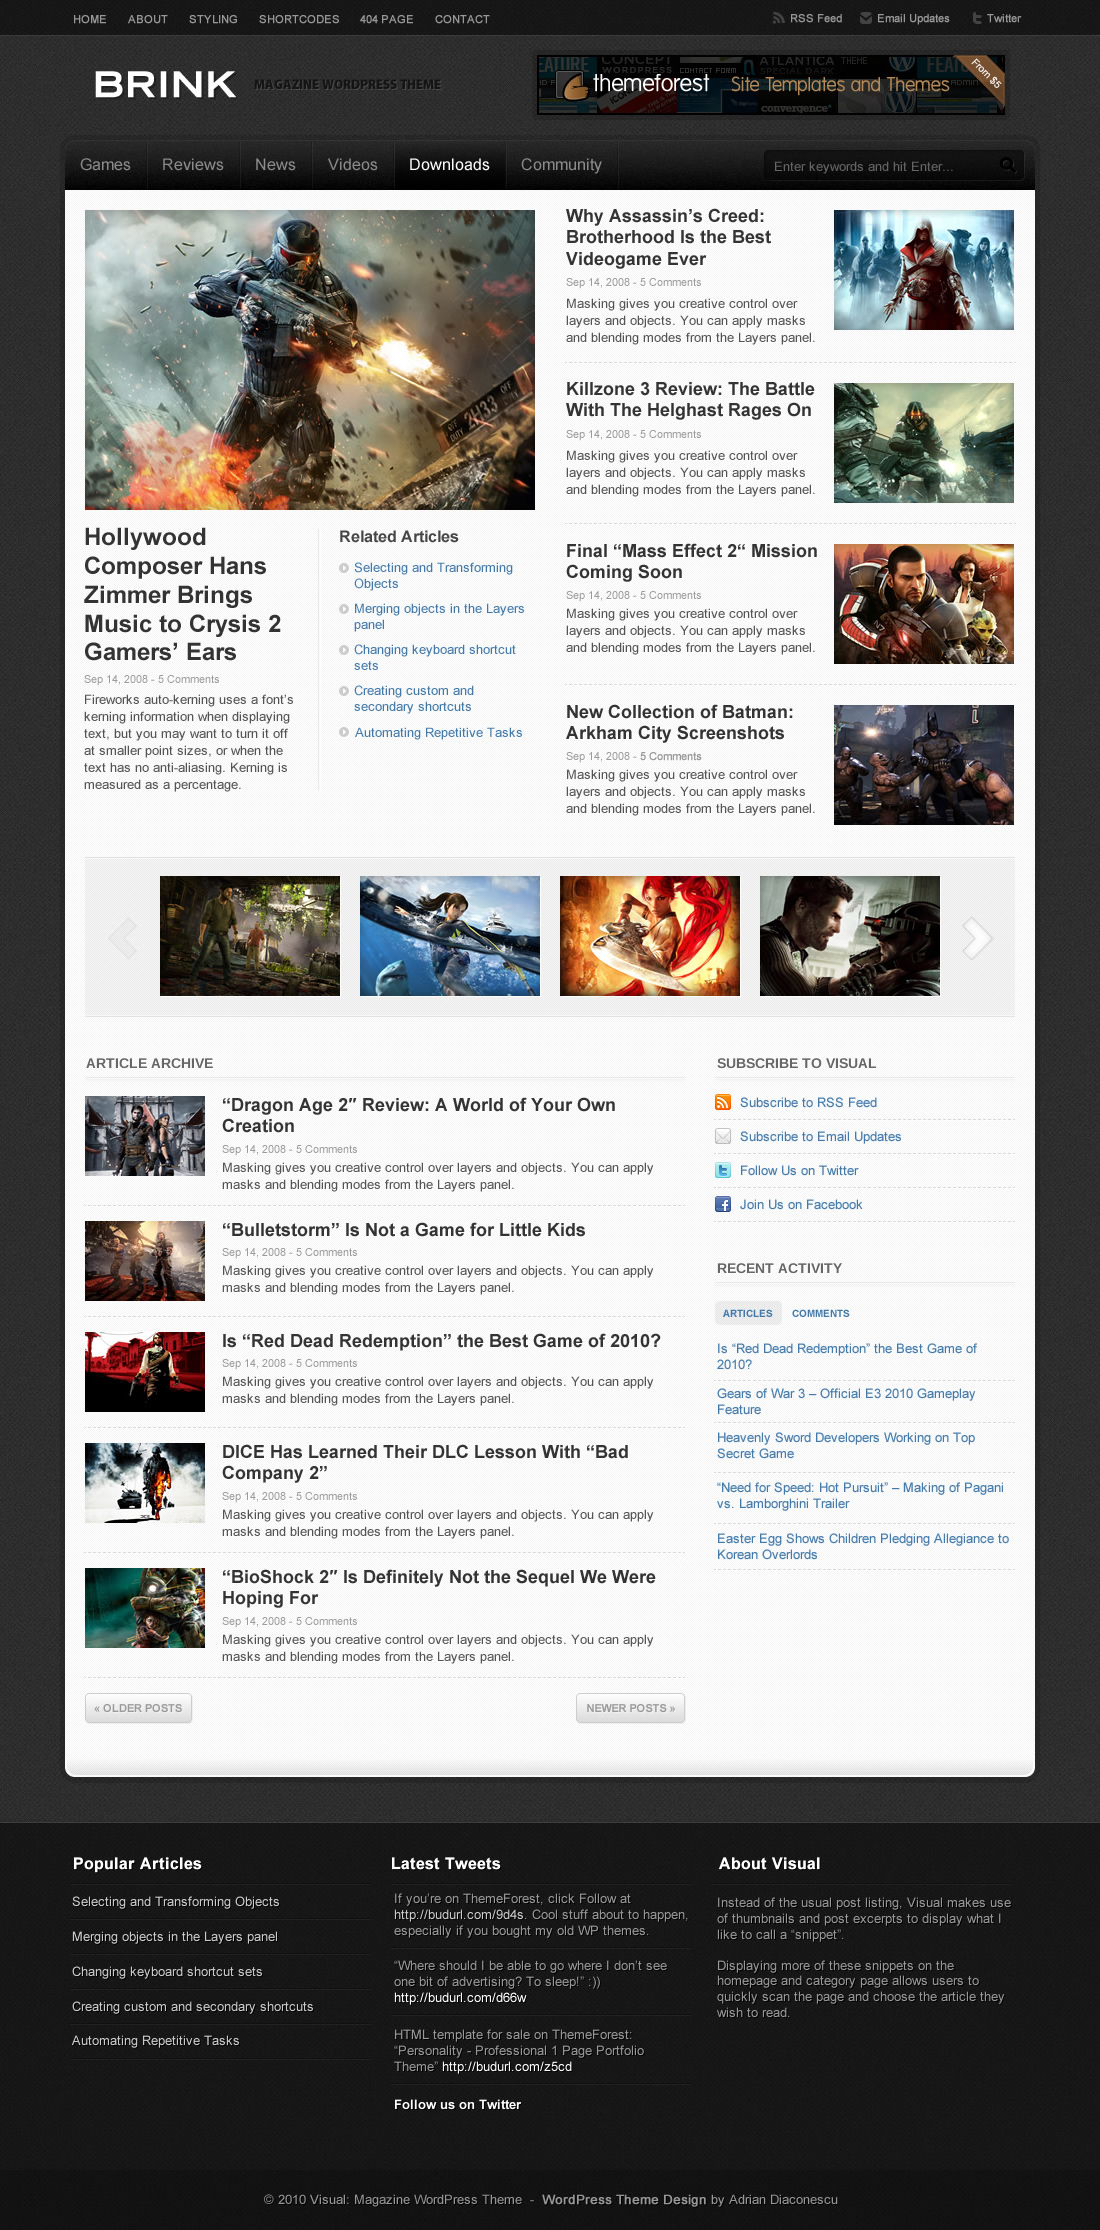 Brink - Magazine WordPress Theme - Category Page Dark Skin